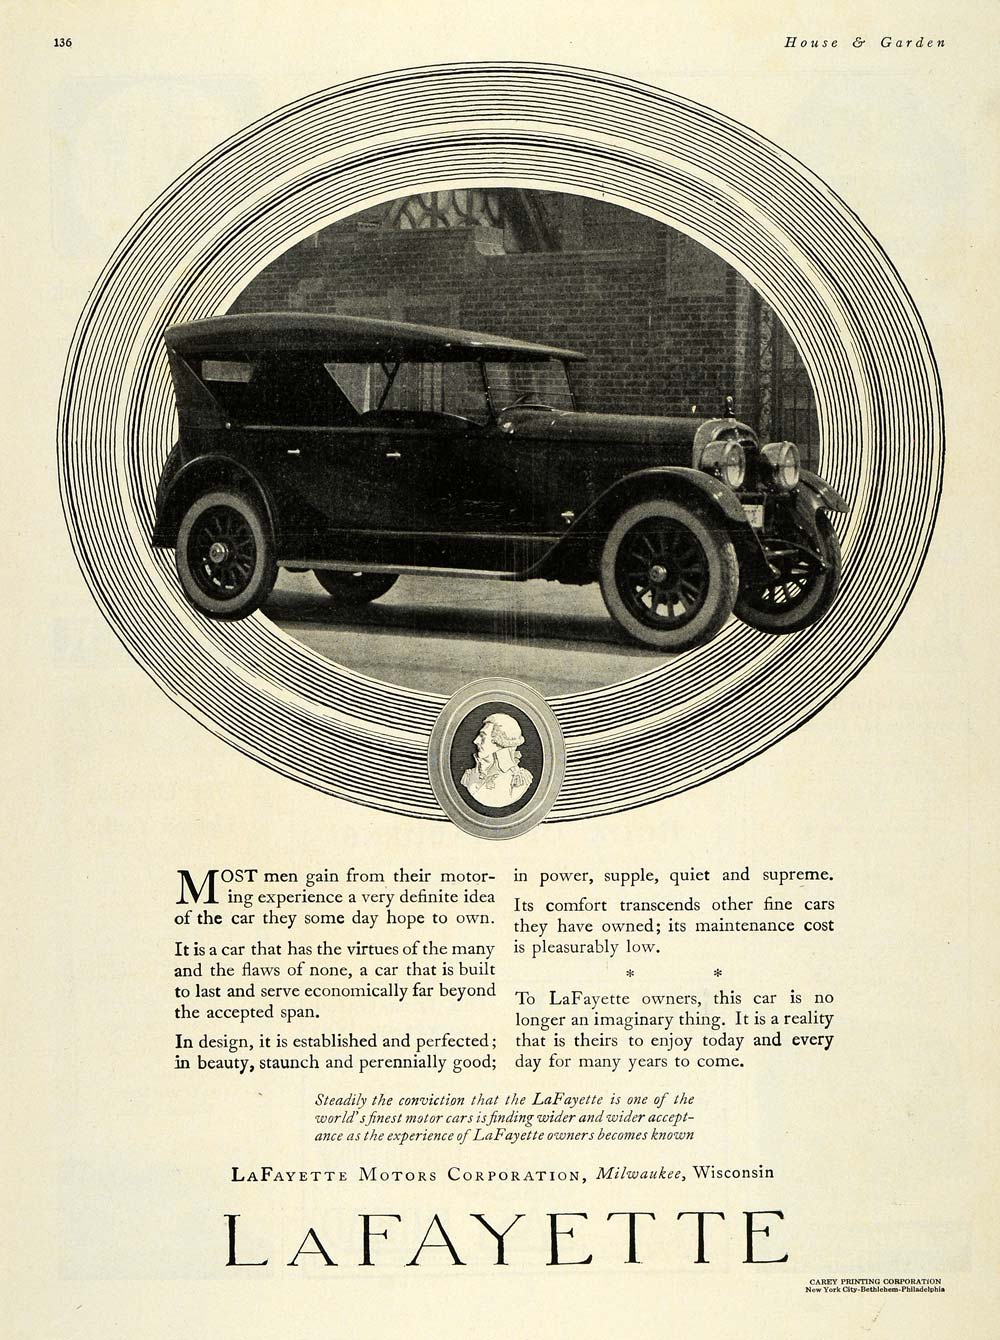 1923 Ad LaFayette Antique Cars Milwaukee Wisconsin - ORIGINAL ADVERTISING HG1